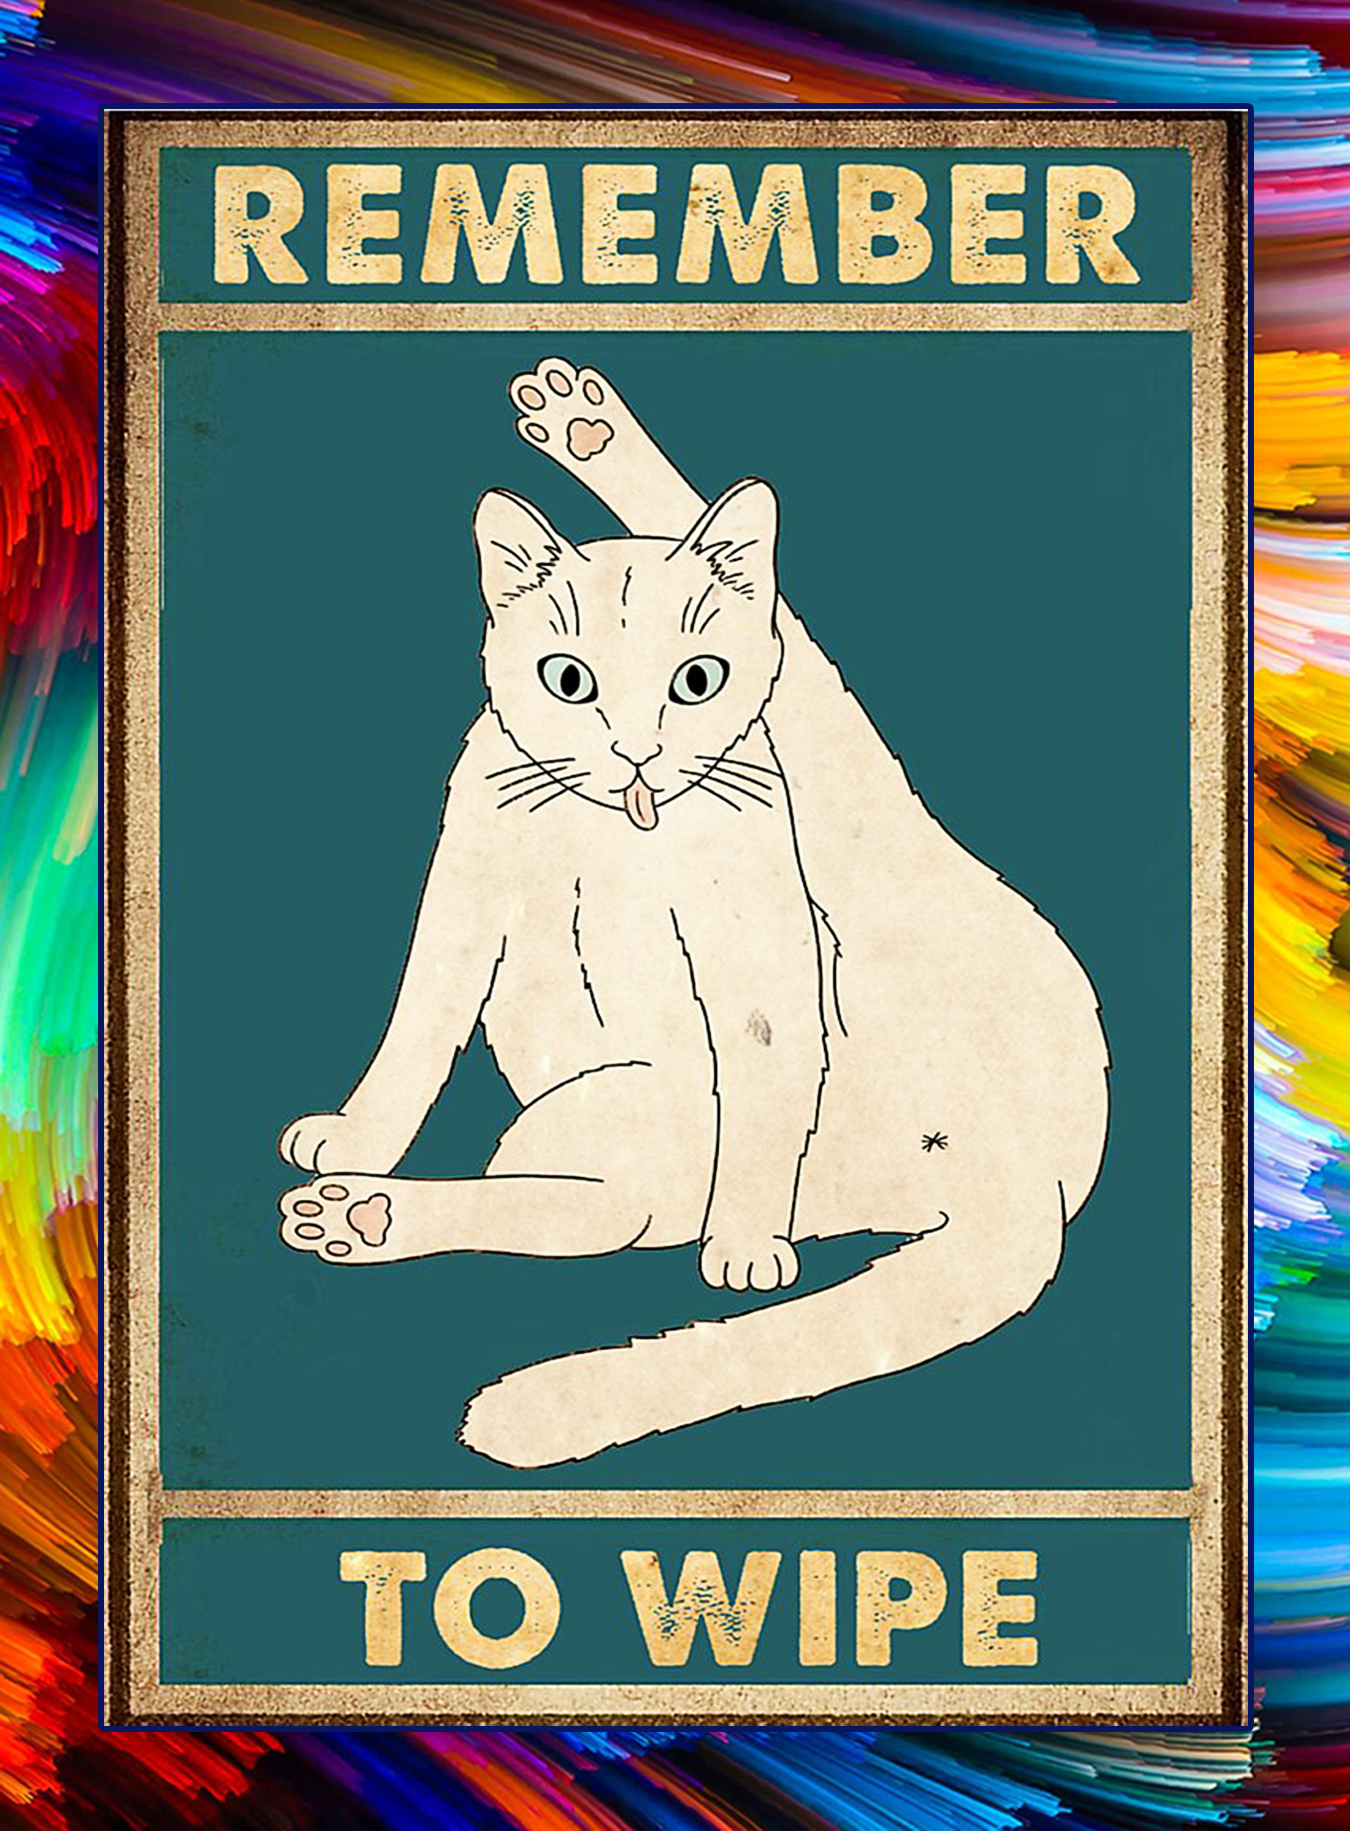 Remember to wipe cat poster - A3